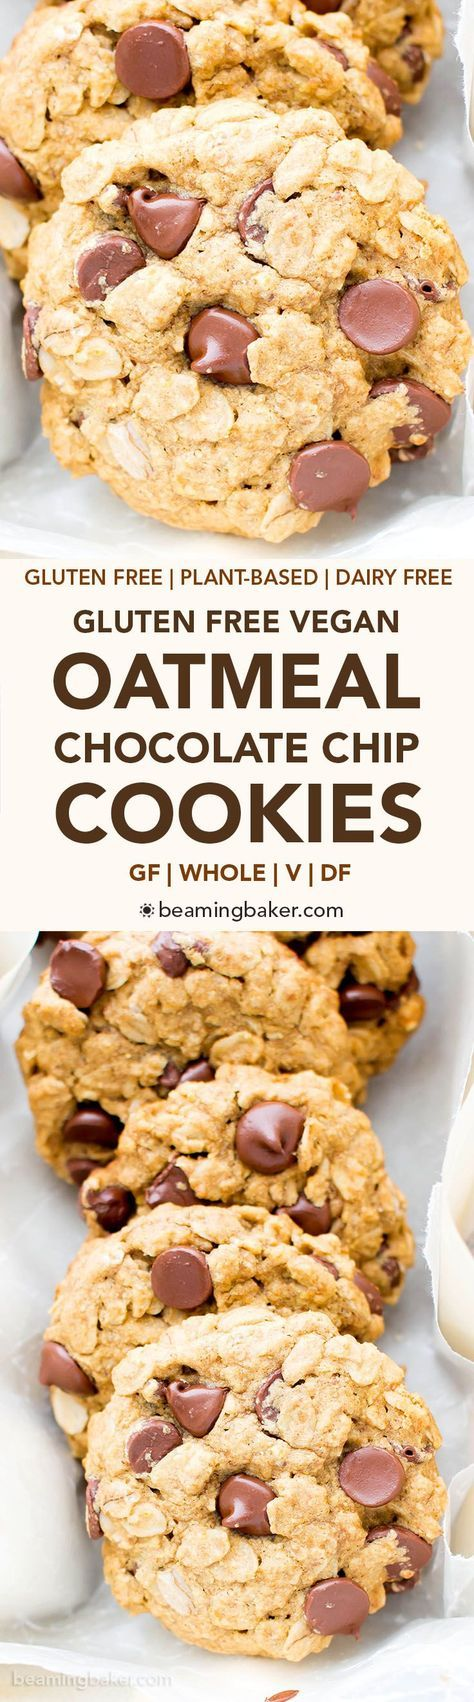 Mail Sara Lacey Outlook Vegan Oatmeal Chocolate Chip Cookies Oatmeal Chocolate Chip Cookies Dairy Free Recipes